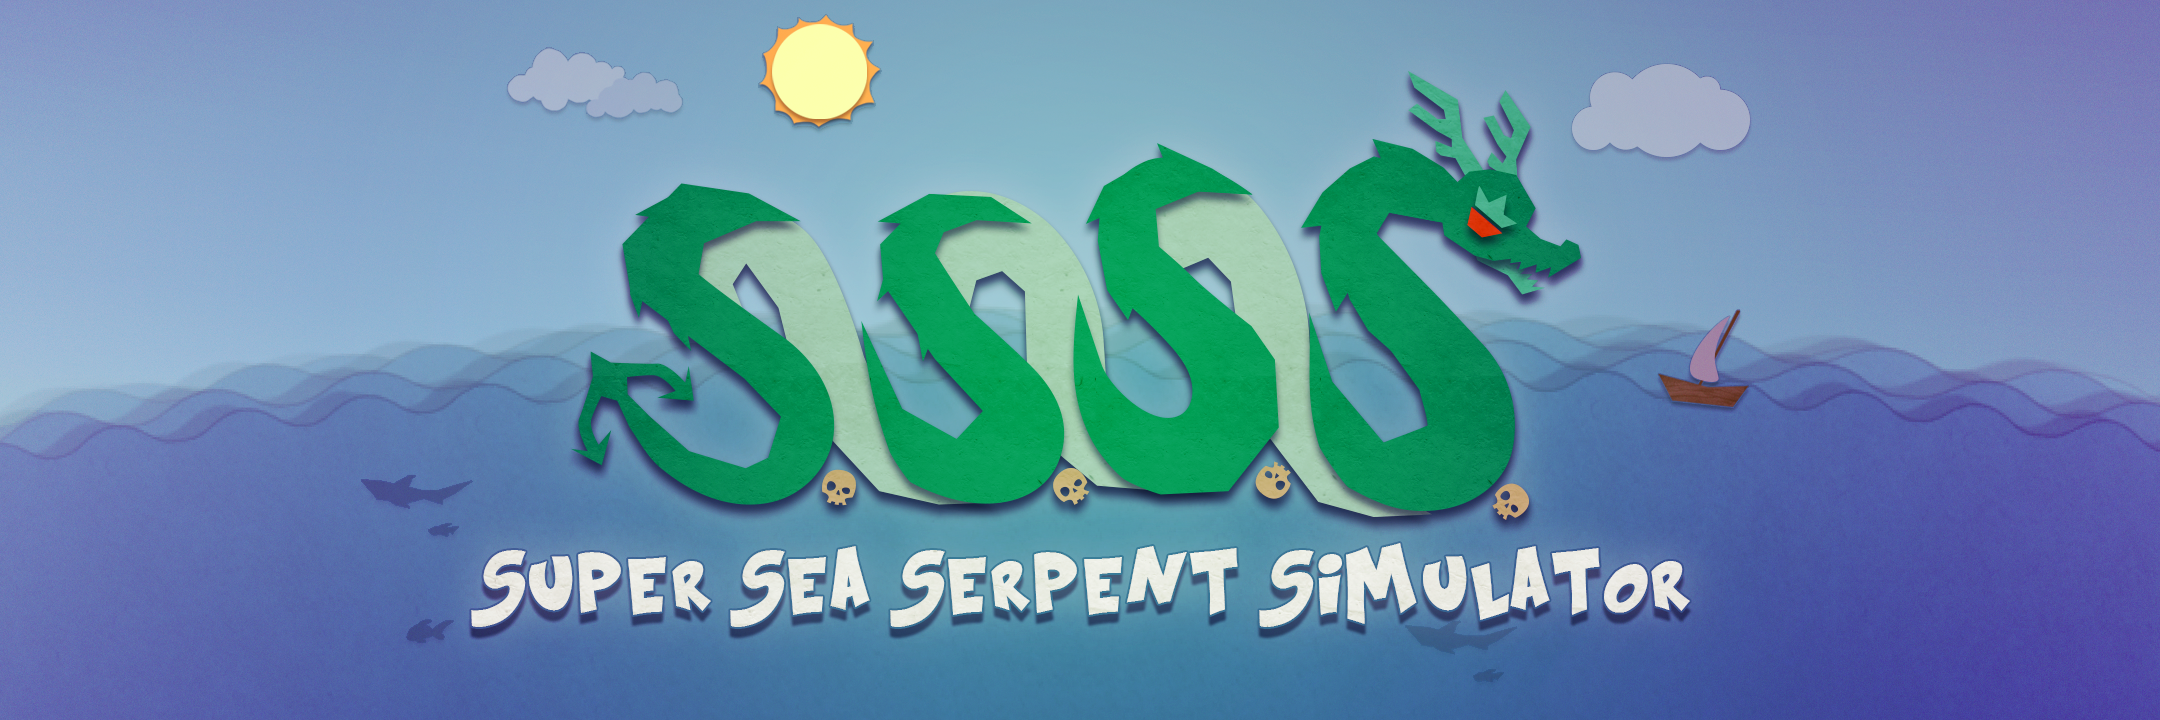 Super Sea Serpent Simulator